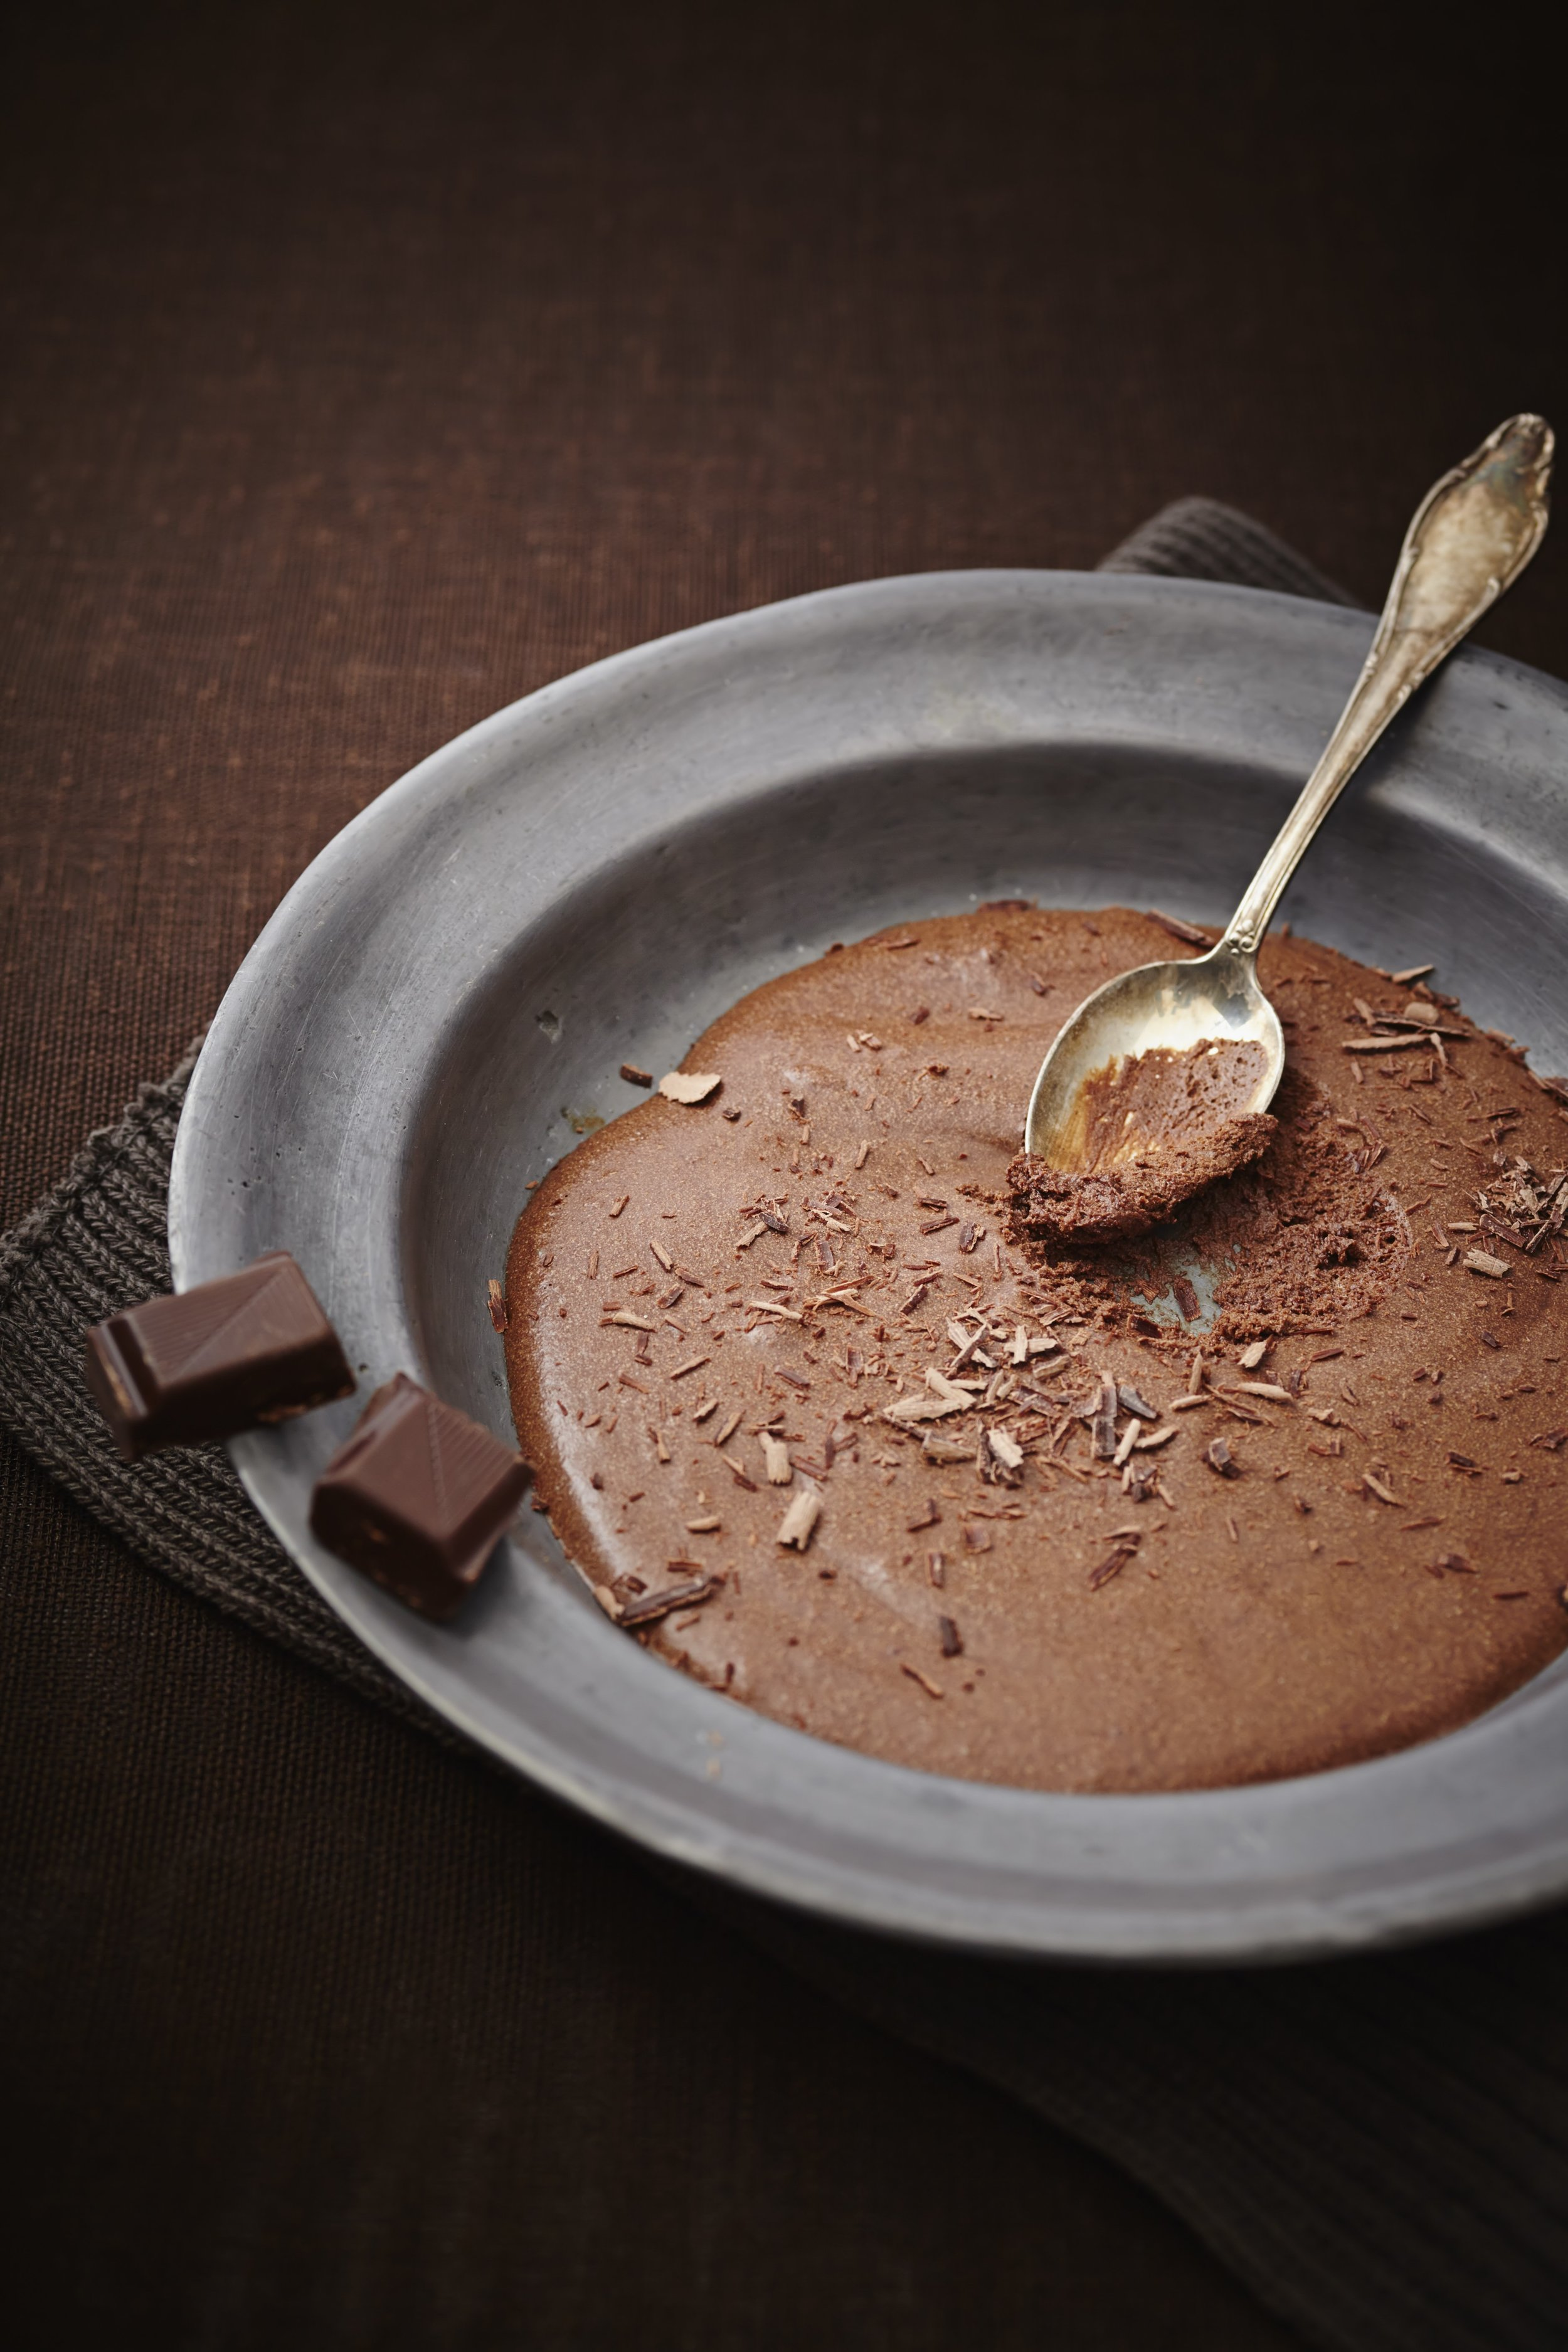 Mousse au Chocolat with spoon on plate